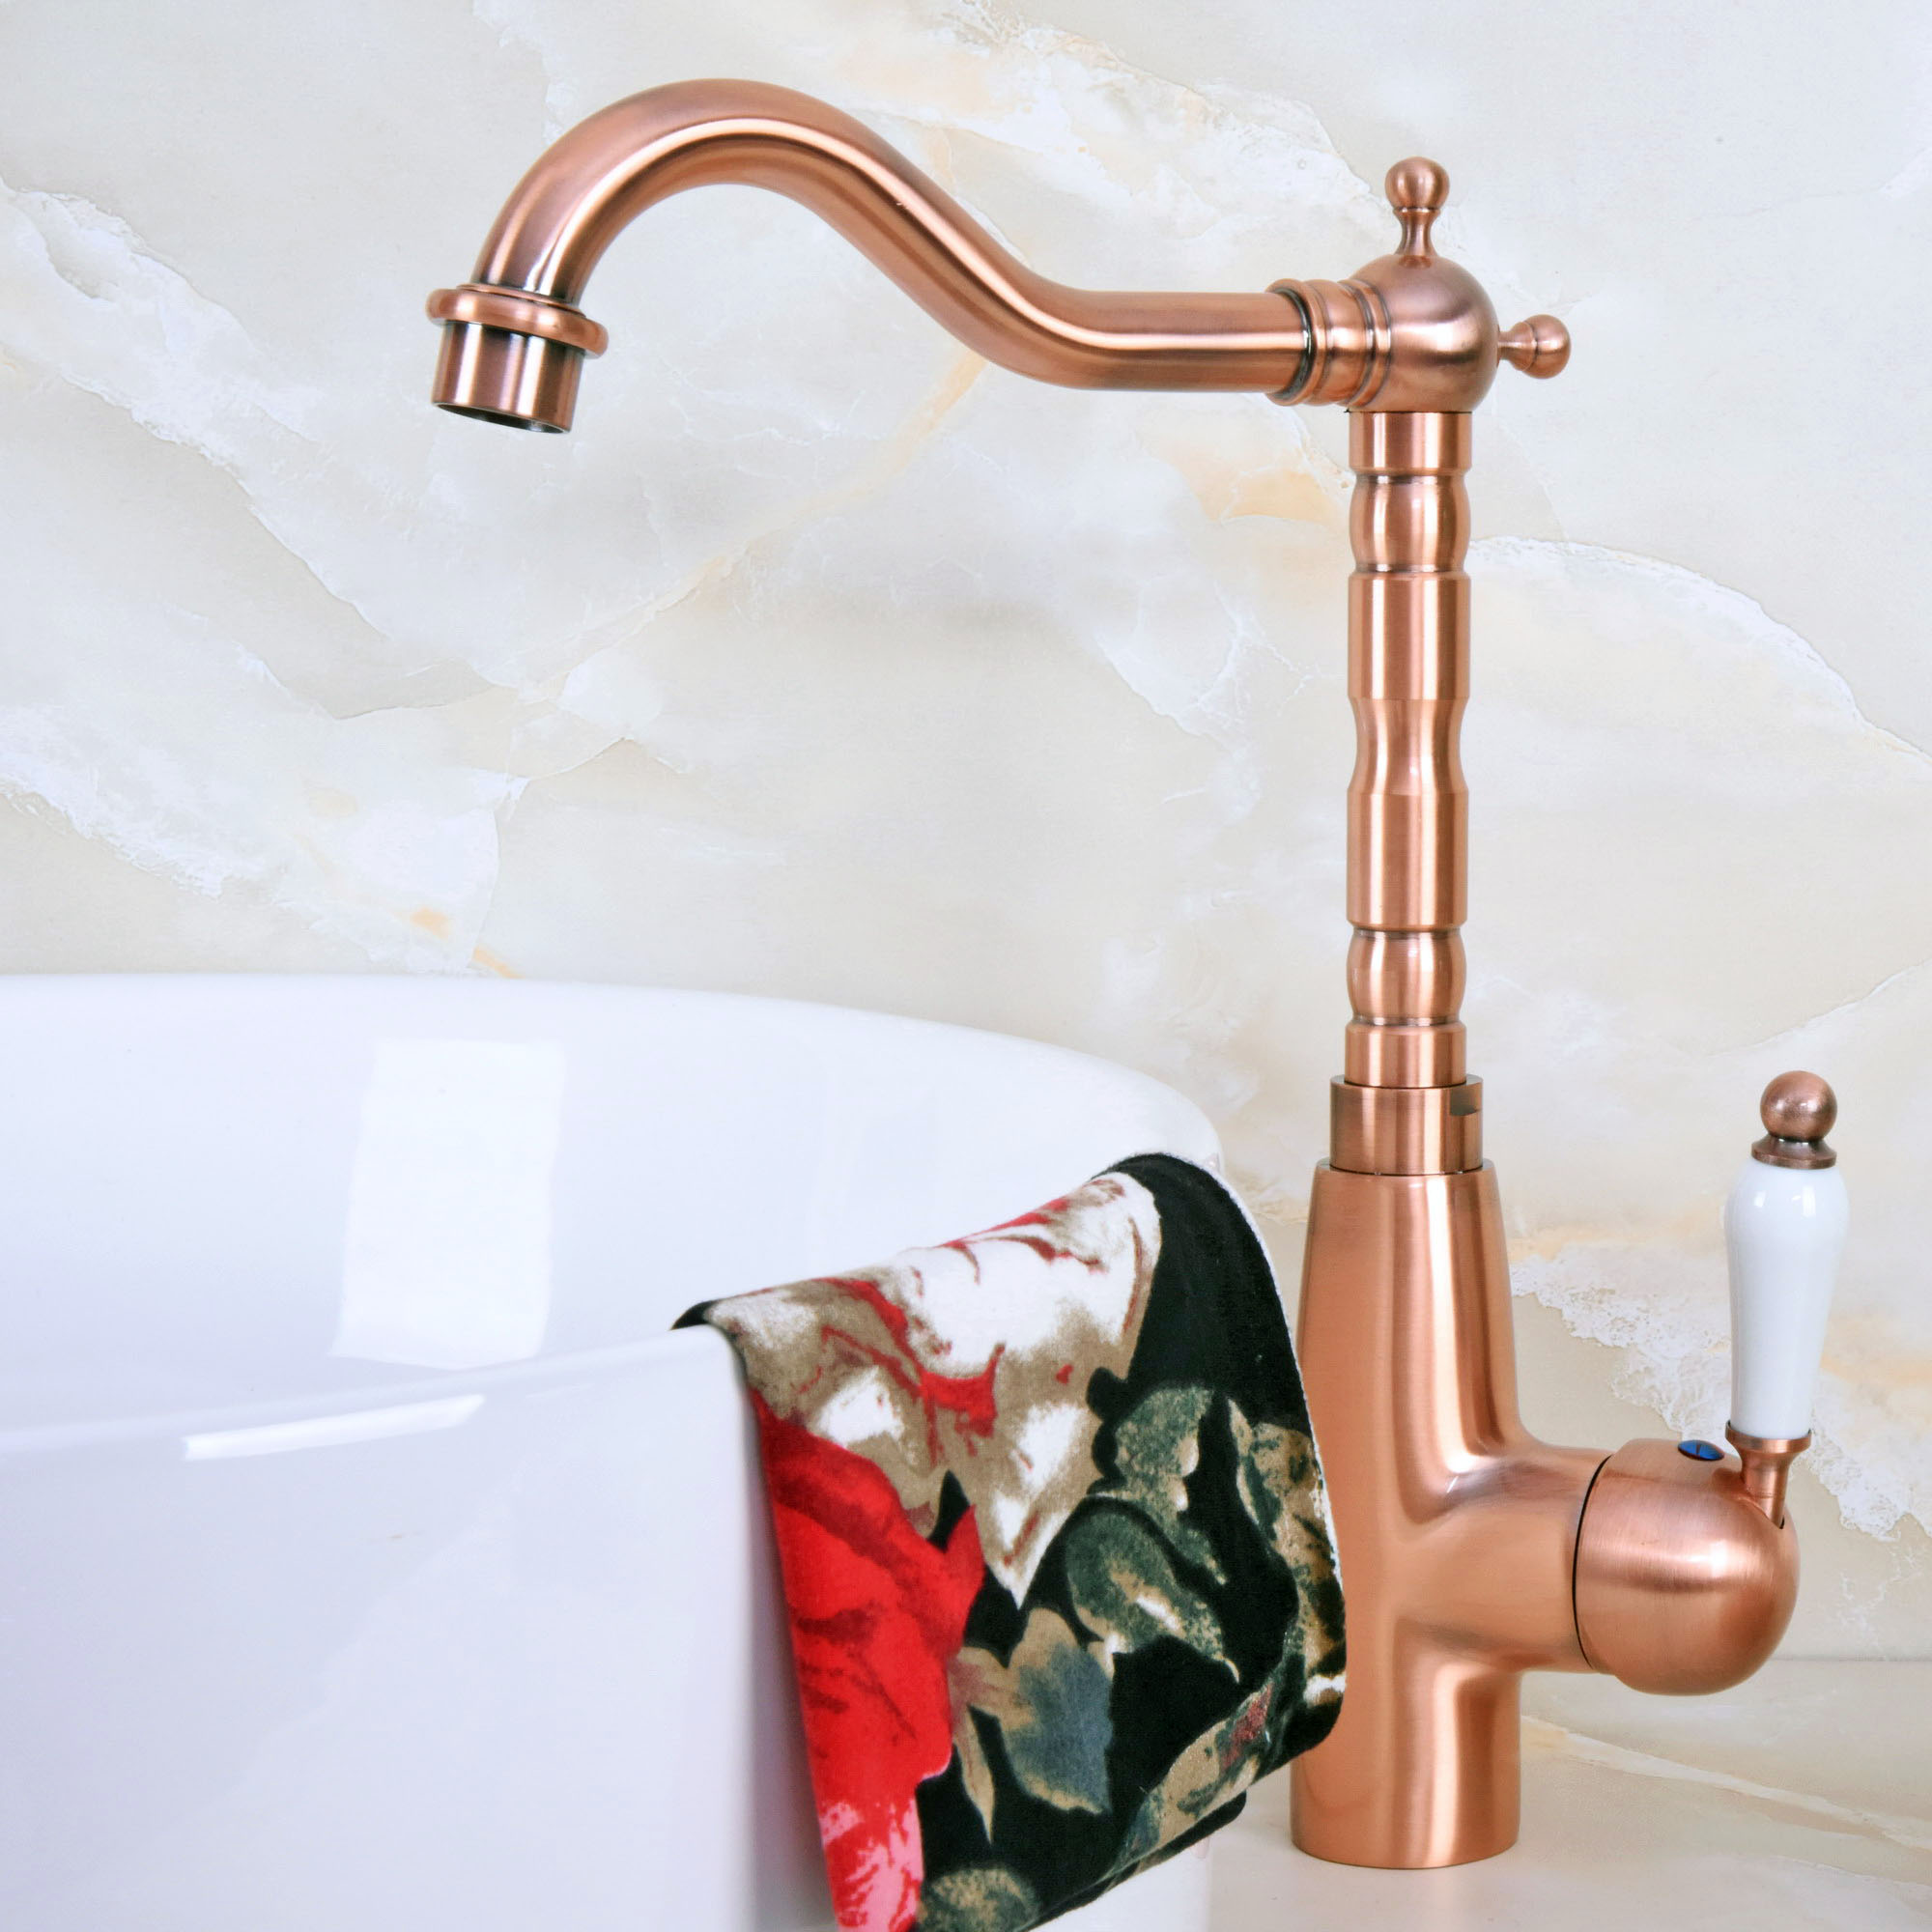 Antique Red Copper Brass Single Ceramic Handle Bathroom Kitchen Basin Sink Faucet Mixer Tap Swivel Spout Deck Mounted Mnf637